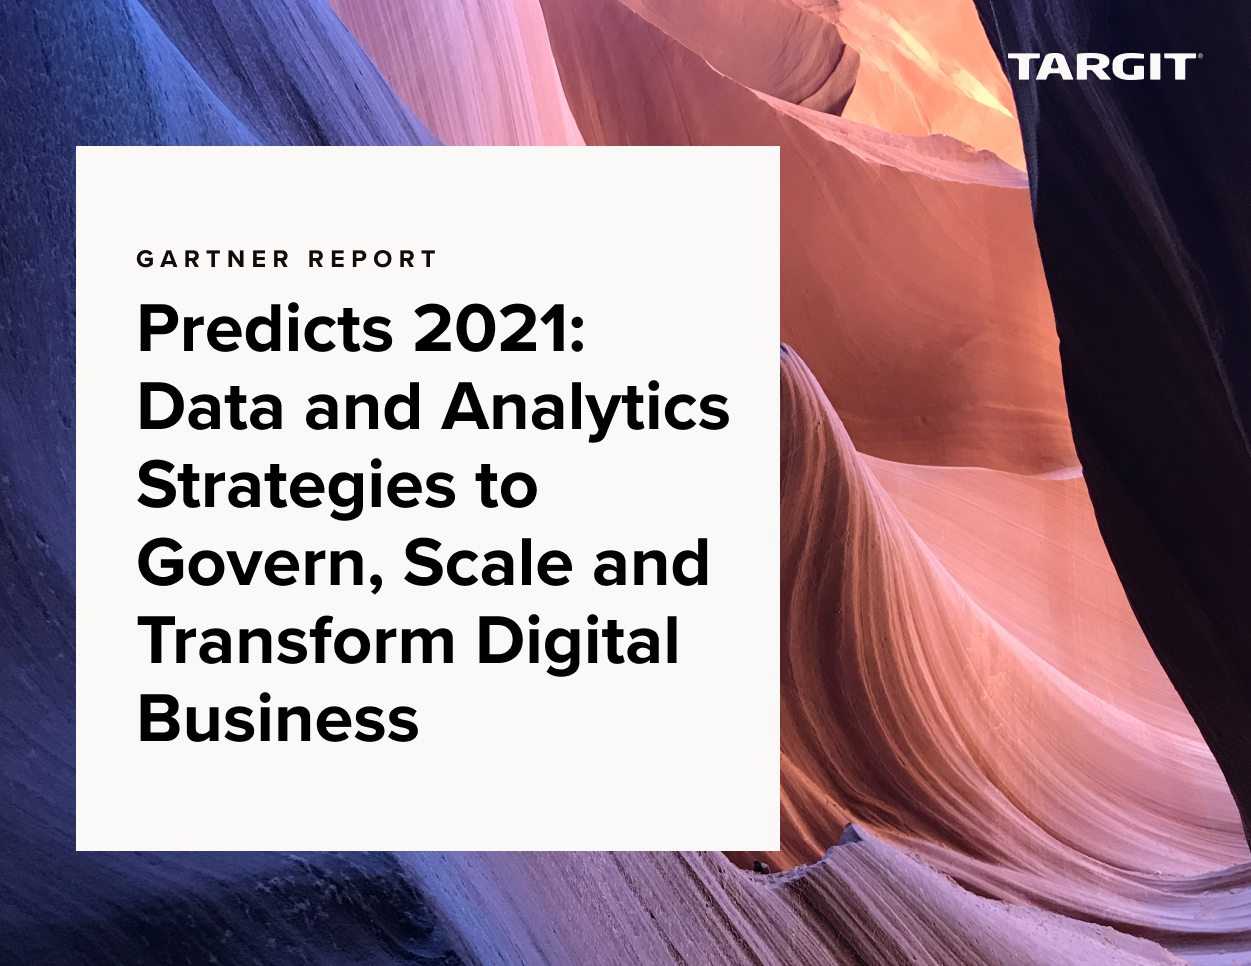 Predicts 2021: Data and Analytics Strategies to Govern, Scale and Transform Digital Business